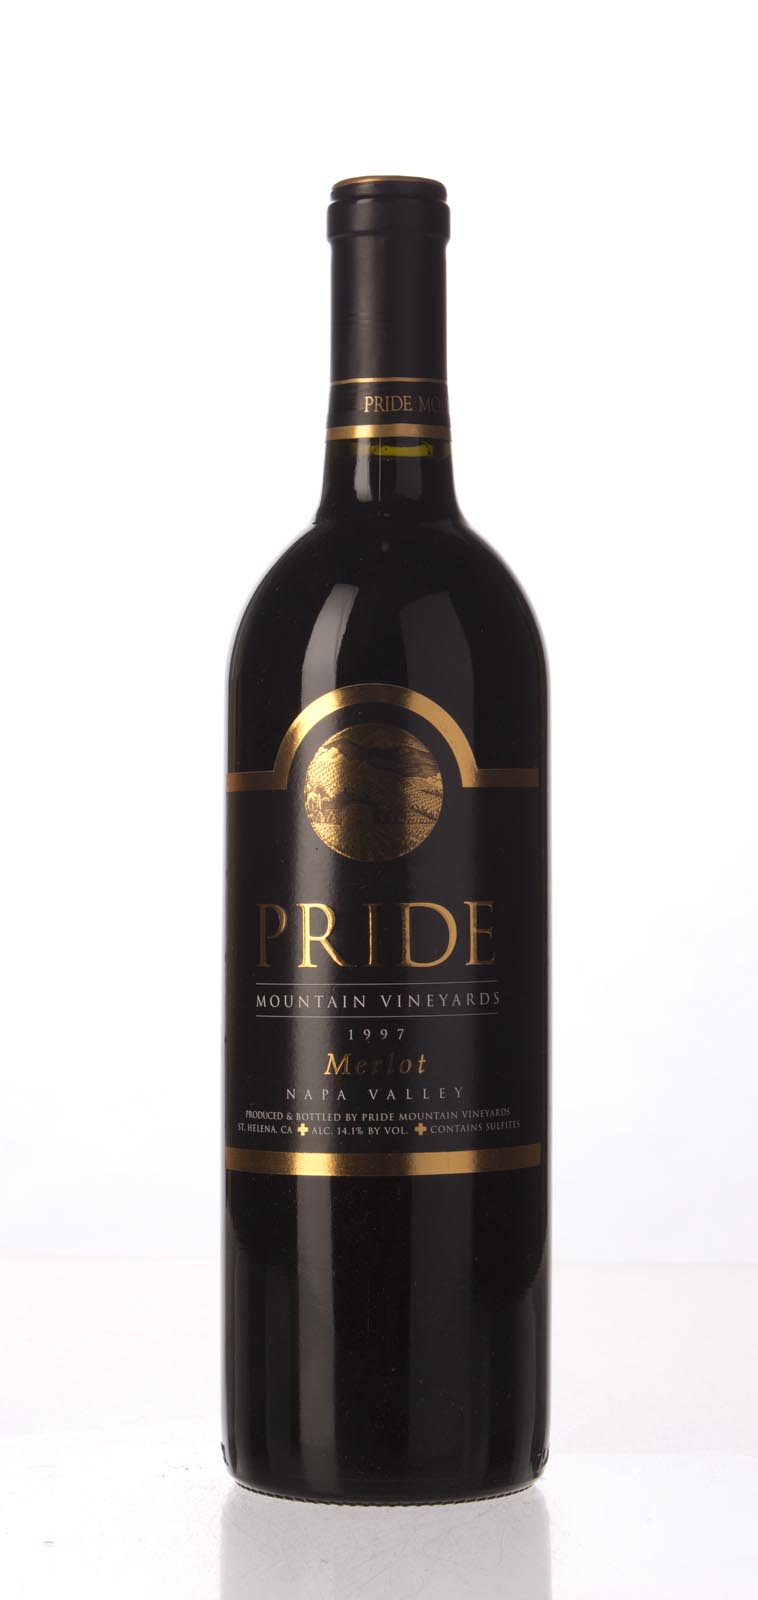 Pride Mountain Vineyards Merlot Napa/Sonoma 1997, 750mL (WA93, WS92) from The BPW - Merchants of rare and fine wines.